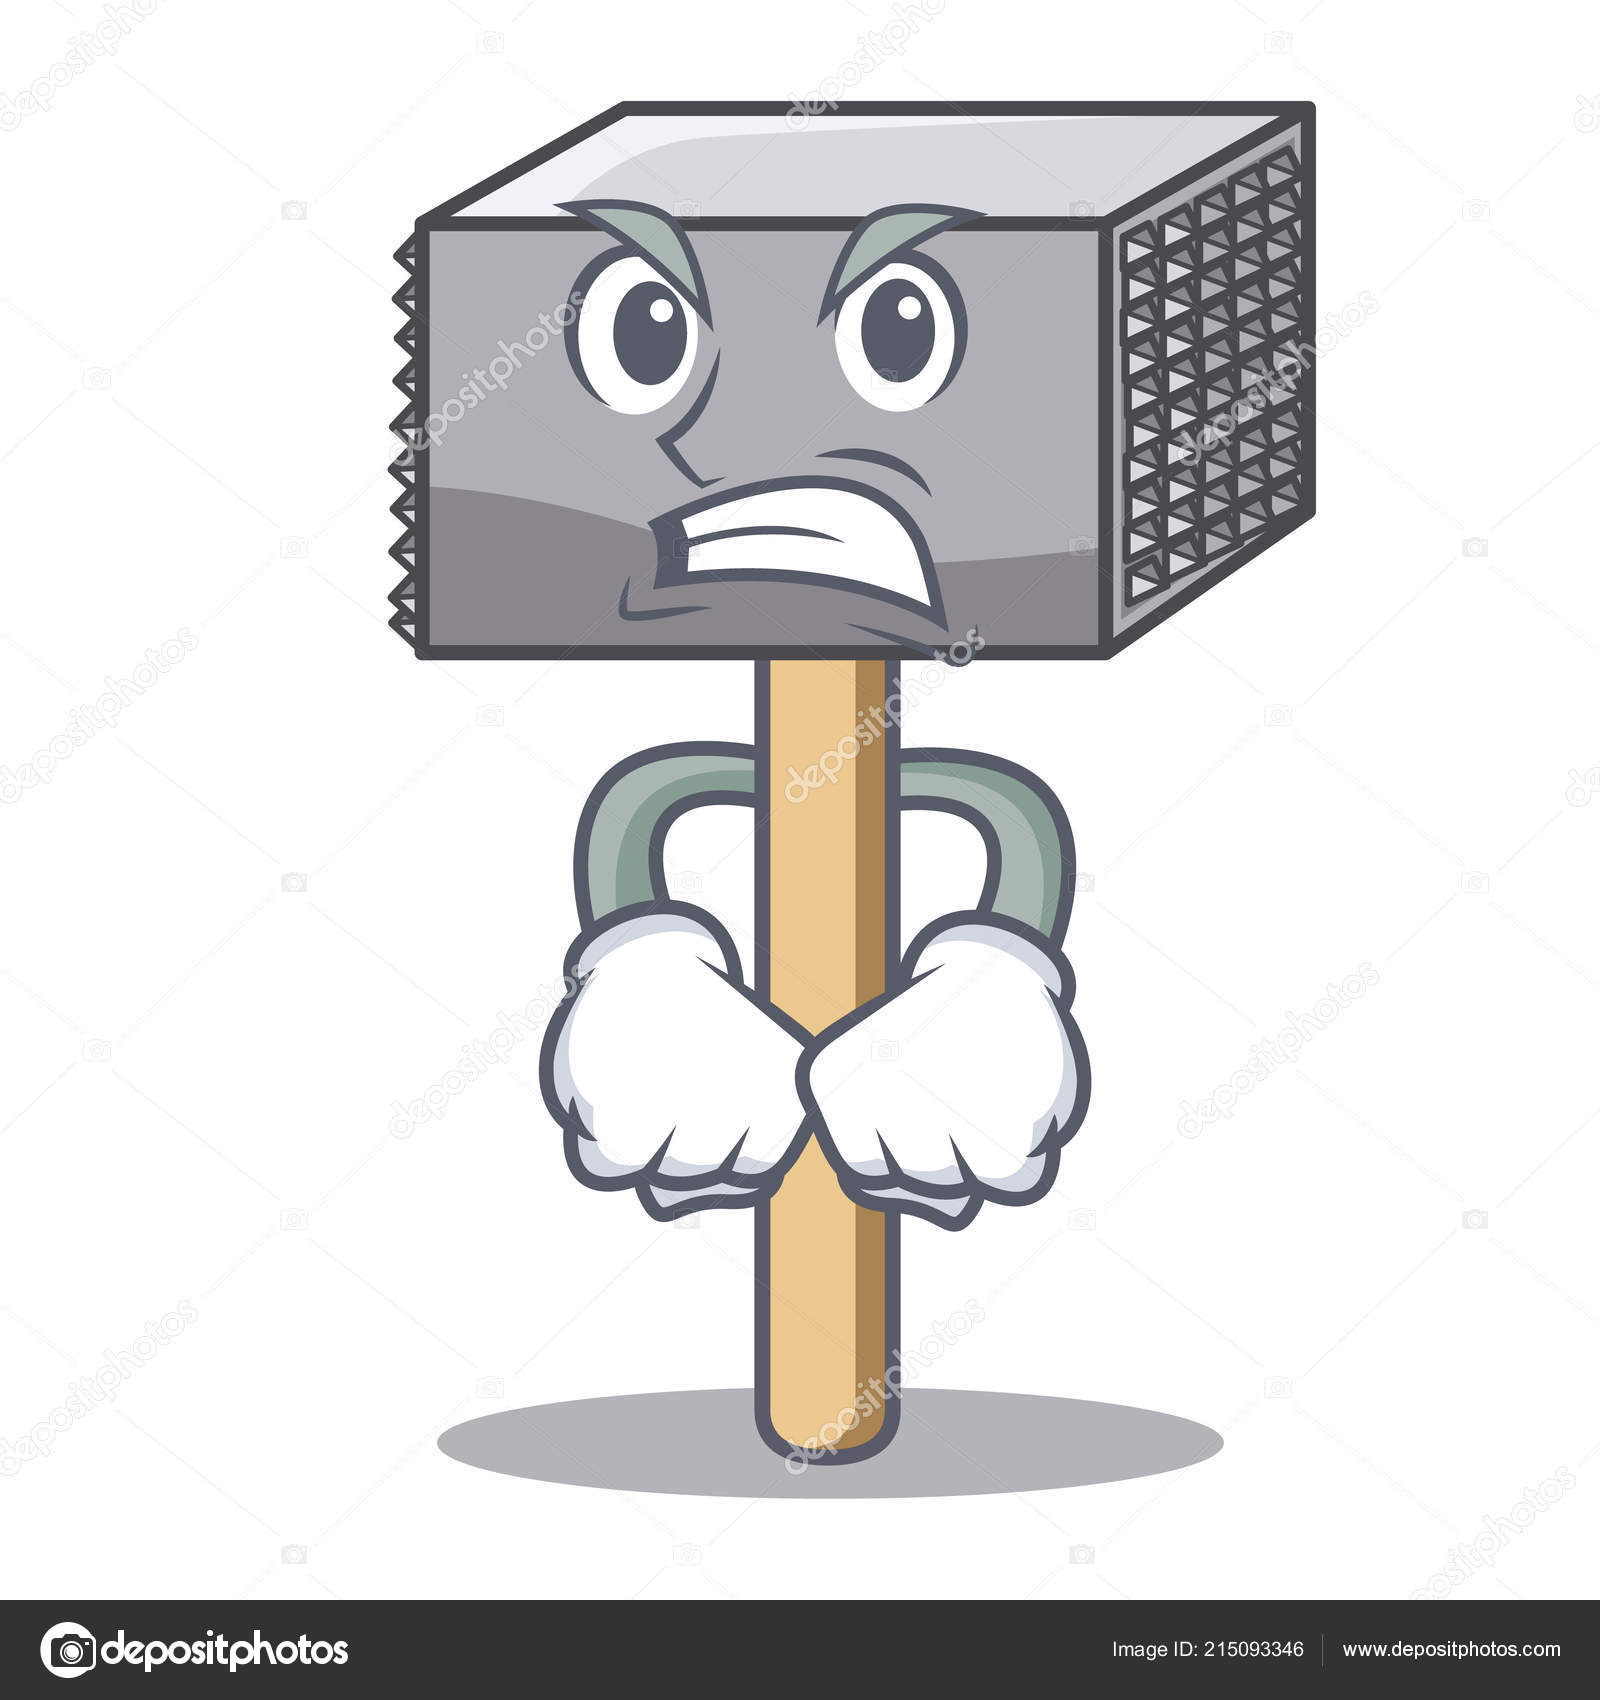 angry wooden meat hammer cartoon for kitchen utensil stock vector